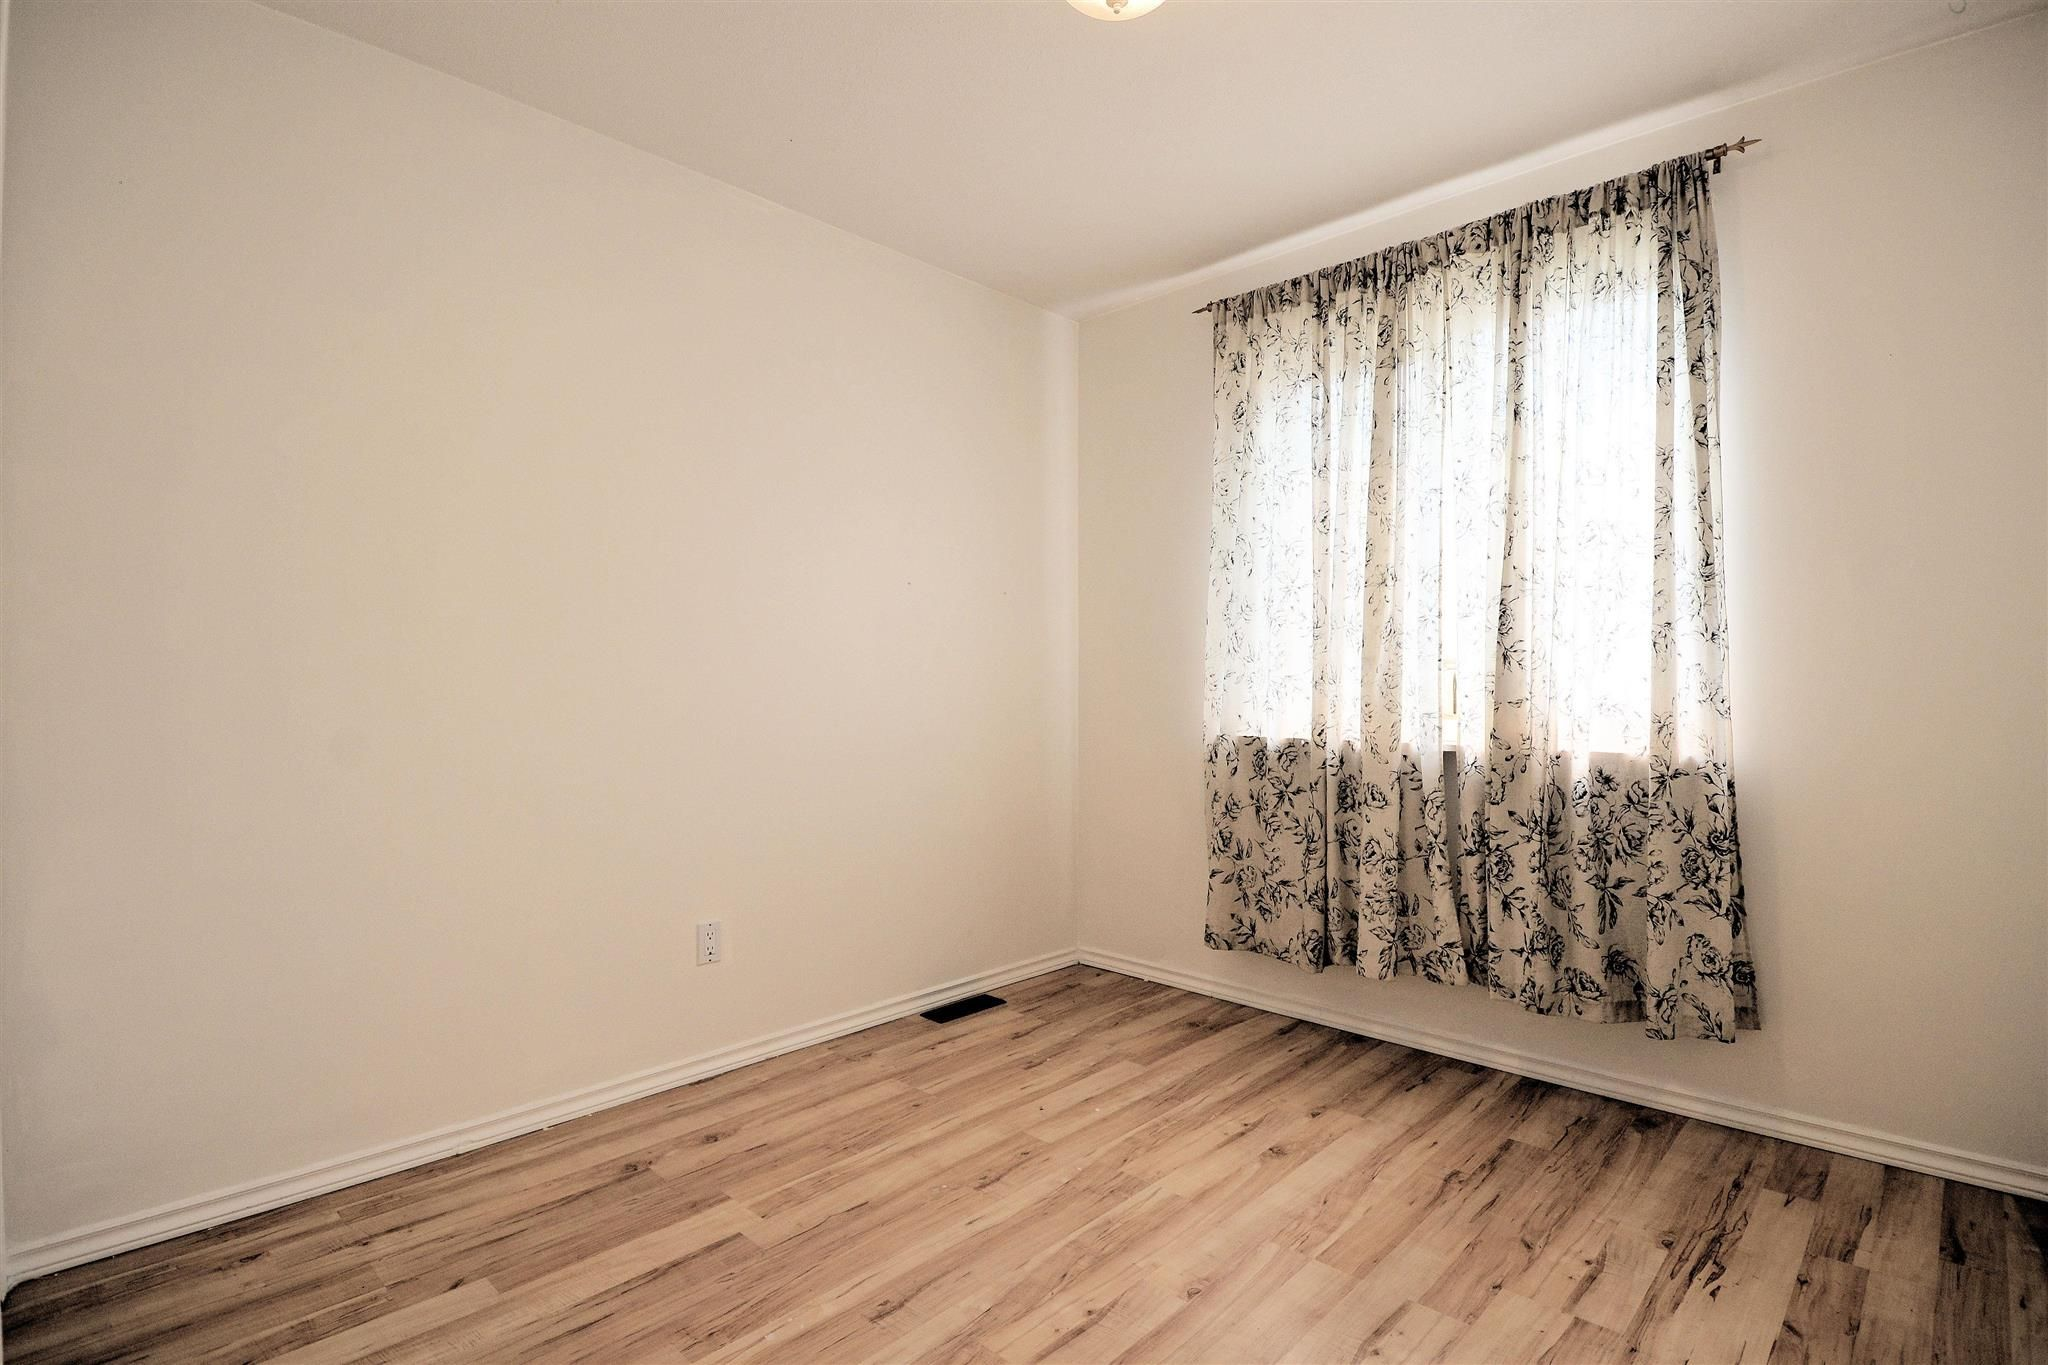 Photo 17: Photos: 2045 CROFT Road in Prince George: Ingala House for sale (PG City North (Zone 73))  : MLS®# R2600190